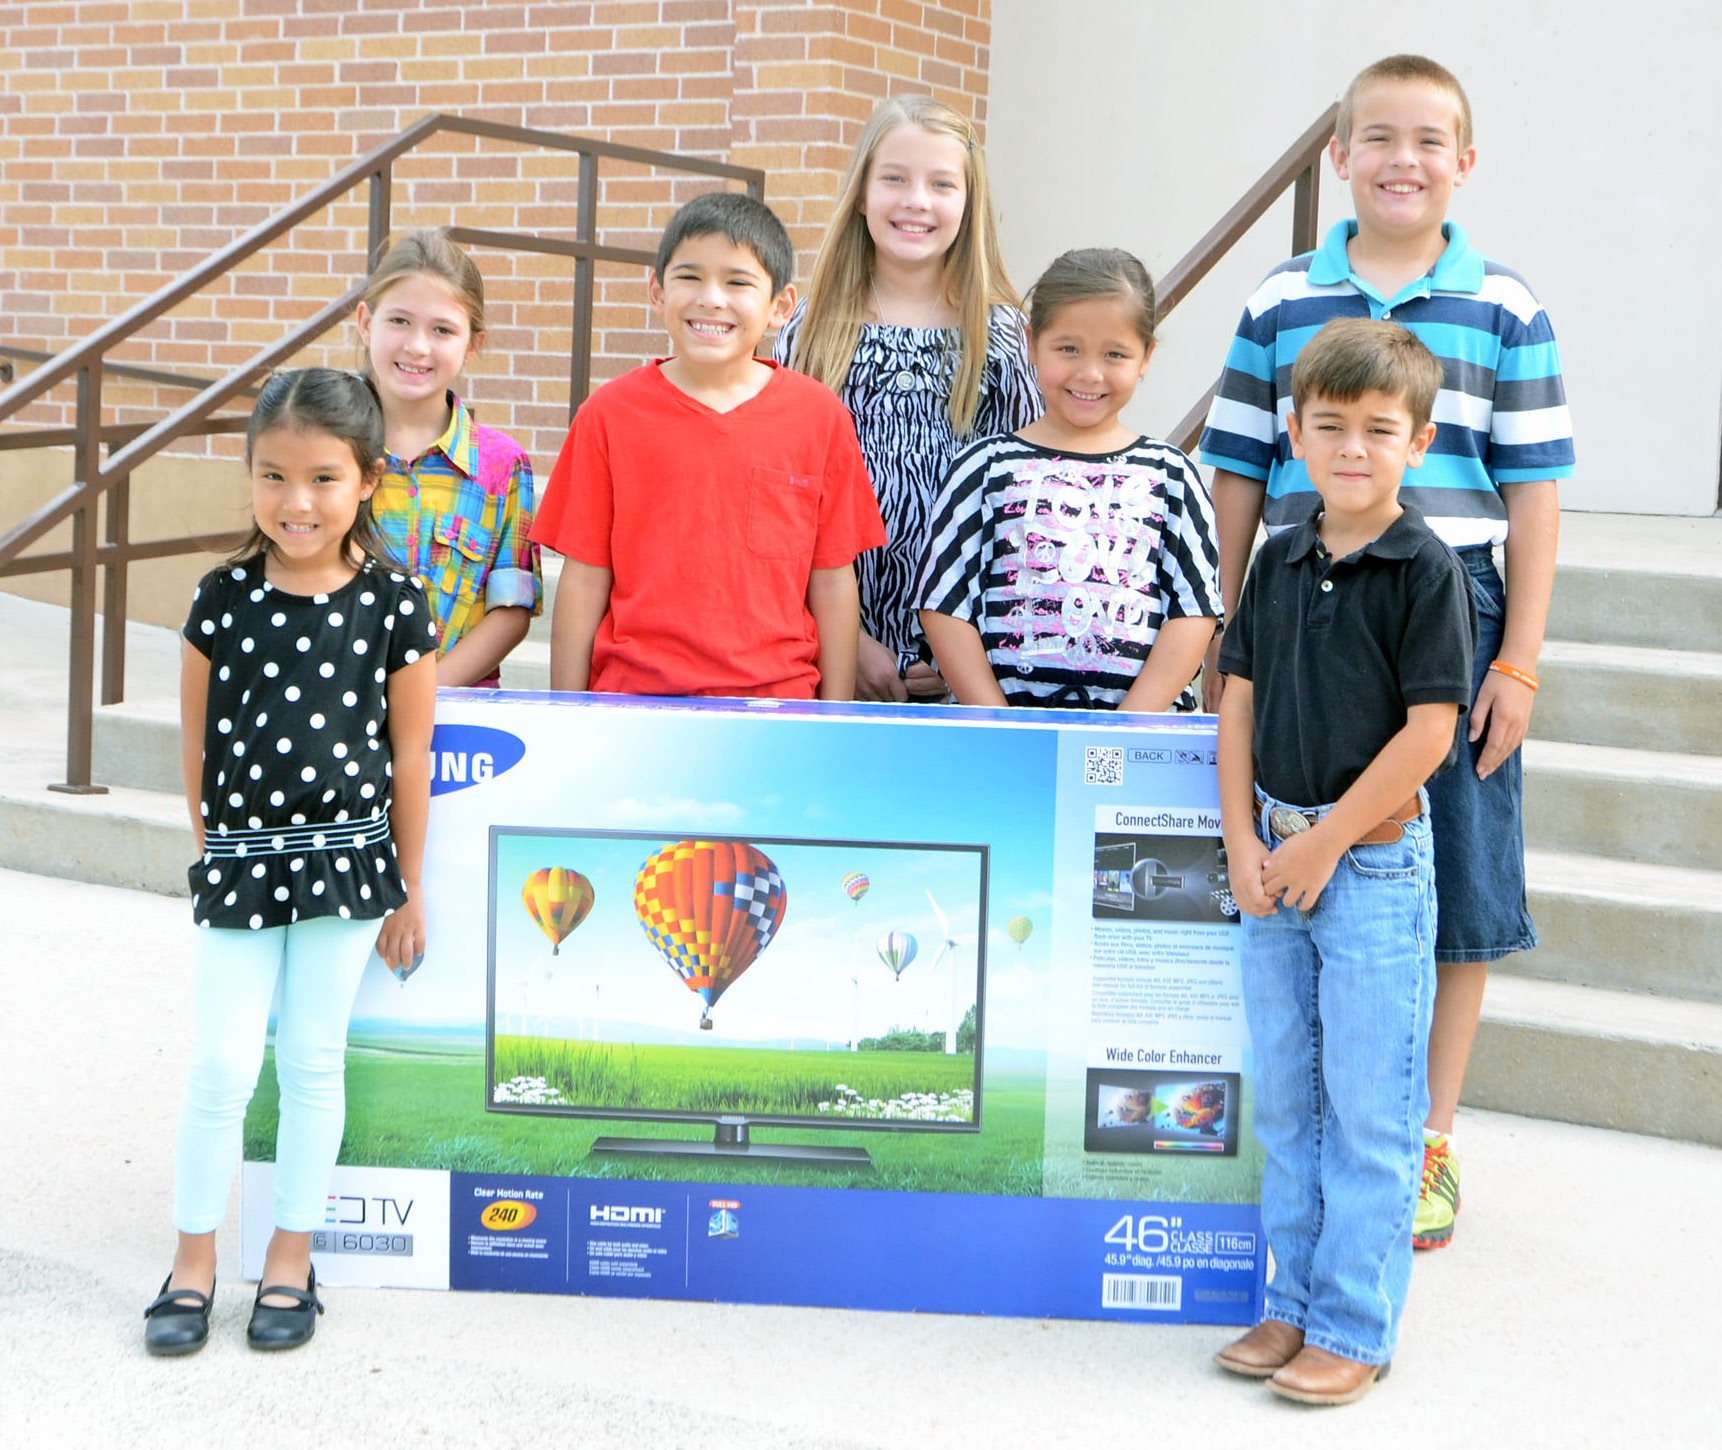 These kiddos are ready for picnic fun at St. Matthew Catholic Church's annual event this Sunday, September 29. Enjoy the delicious barbeque dinner - served from 11 a.m. until 2 p.m. - and bid at the huge auction starting at 12:30 p.m. There will be lots of kids games, bingo, kolache booth and more. Left to right are: Marissa Chapa, Brooke Rankin, Aiden Guzman, Claire Vyvlecka, Josalyn Segura, Michael Howard and John Bautista.